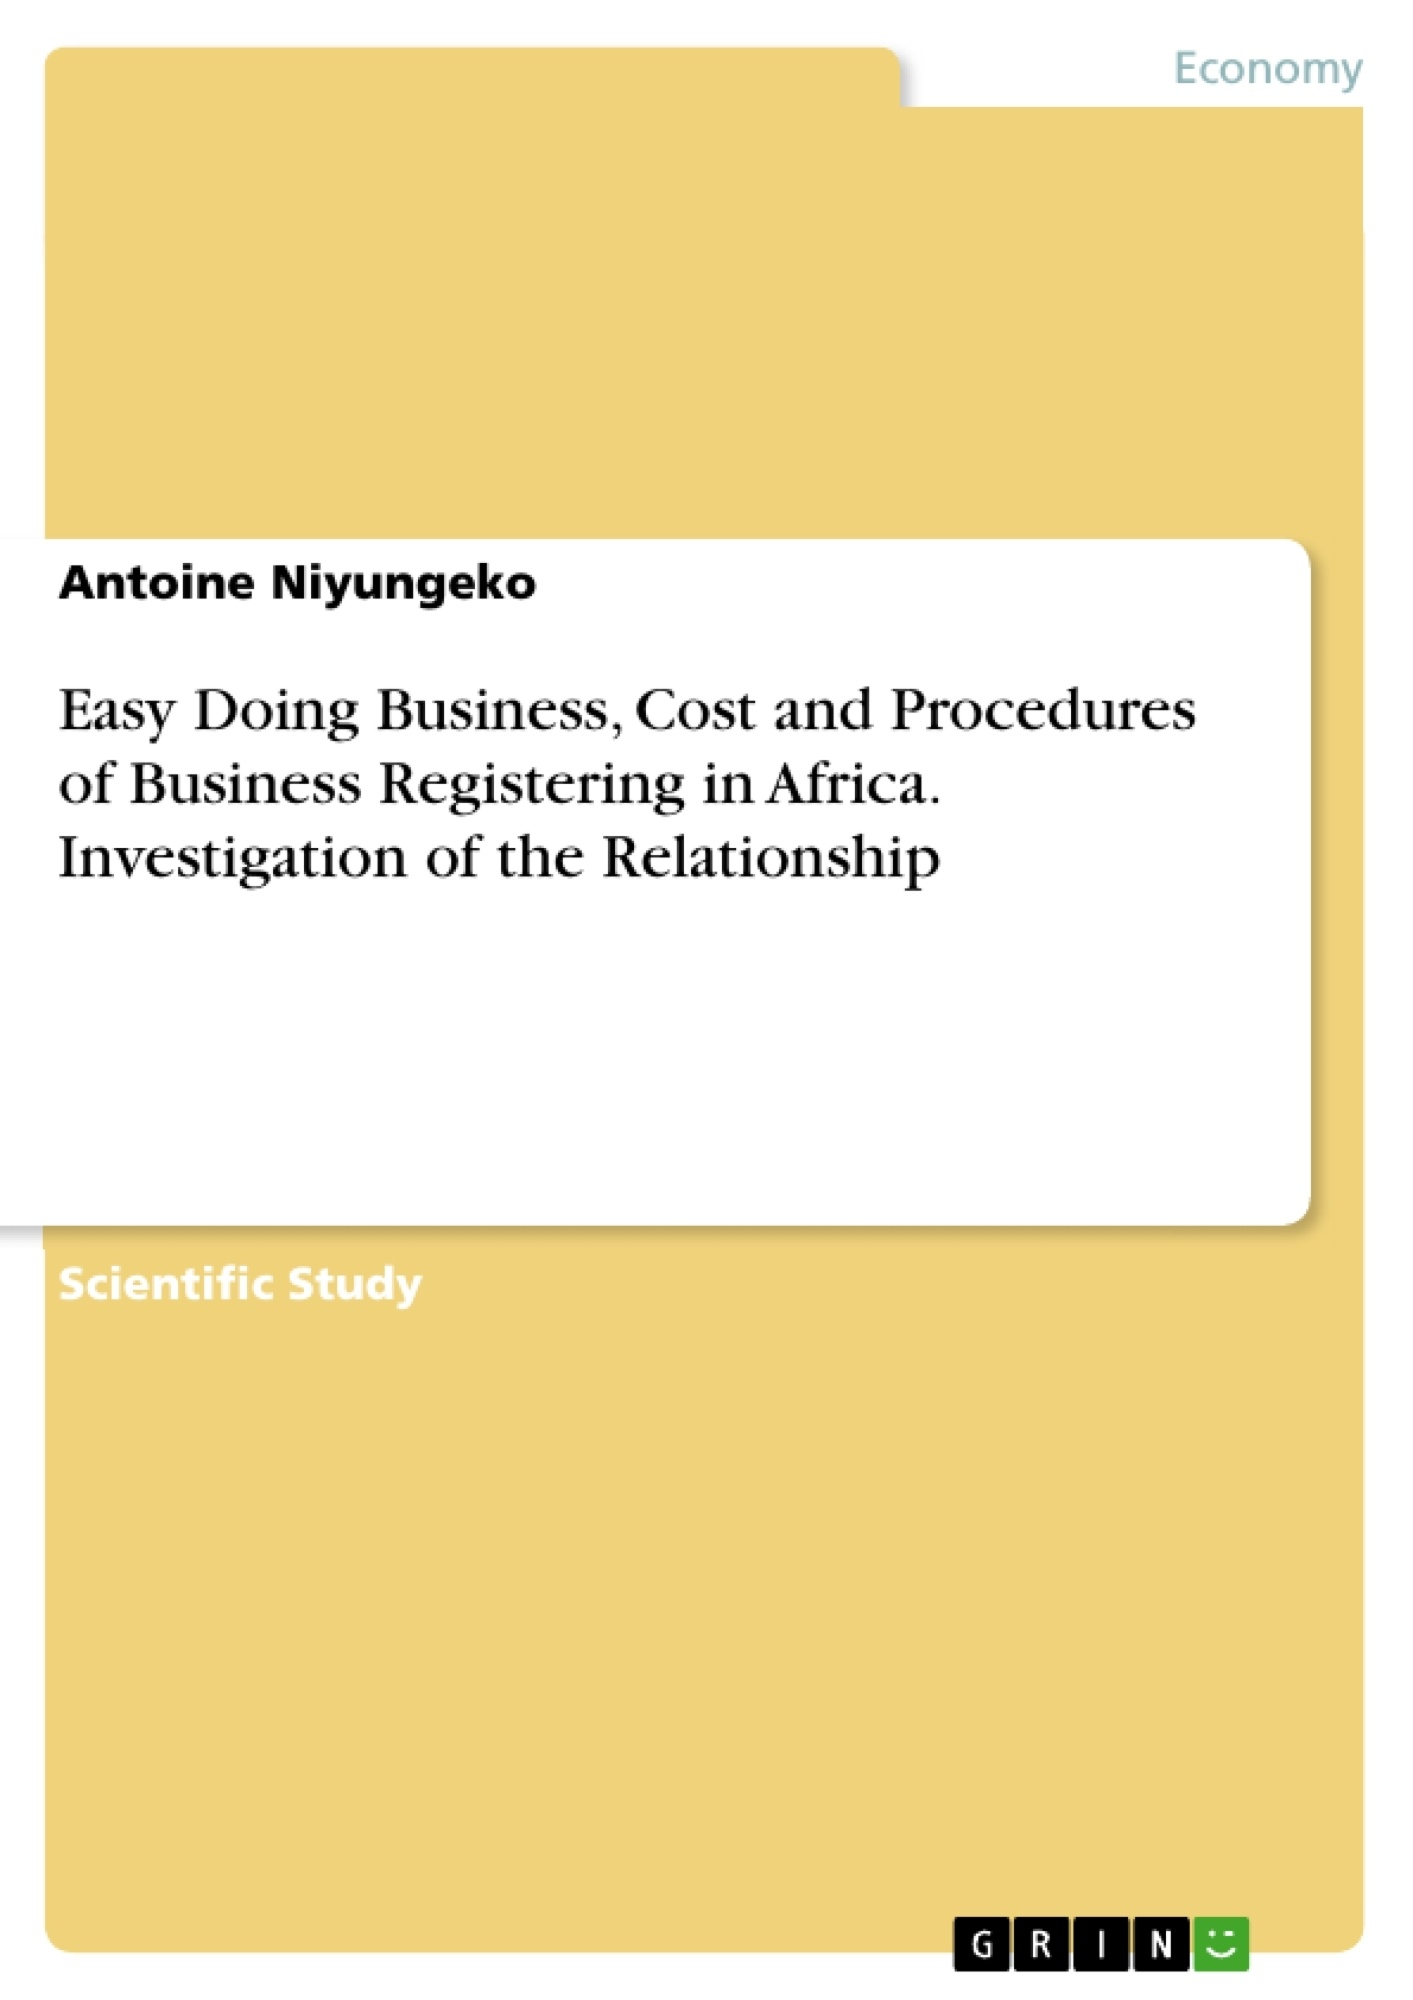 Title: Easy Doing Business, Cost and Procedures of Business Registering in Africa. Investigation of the Relationship